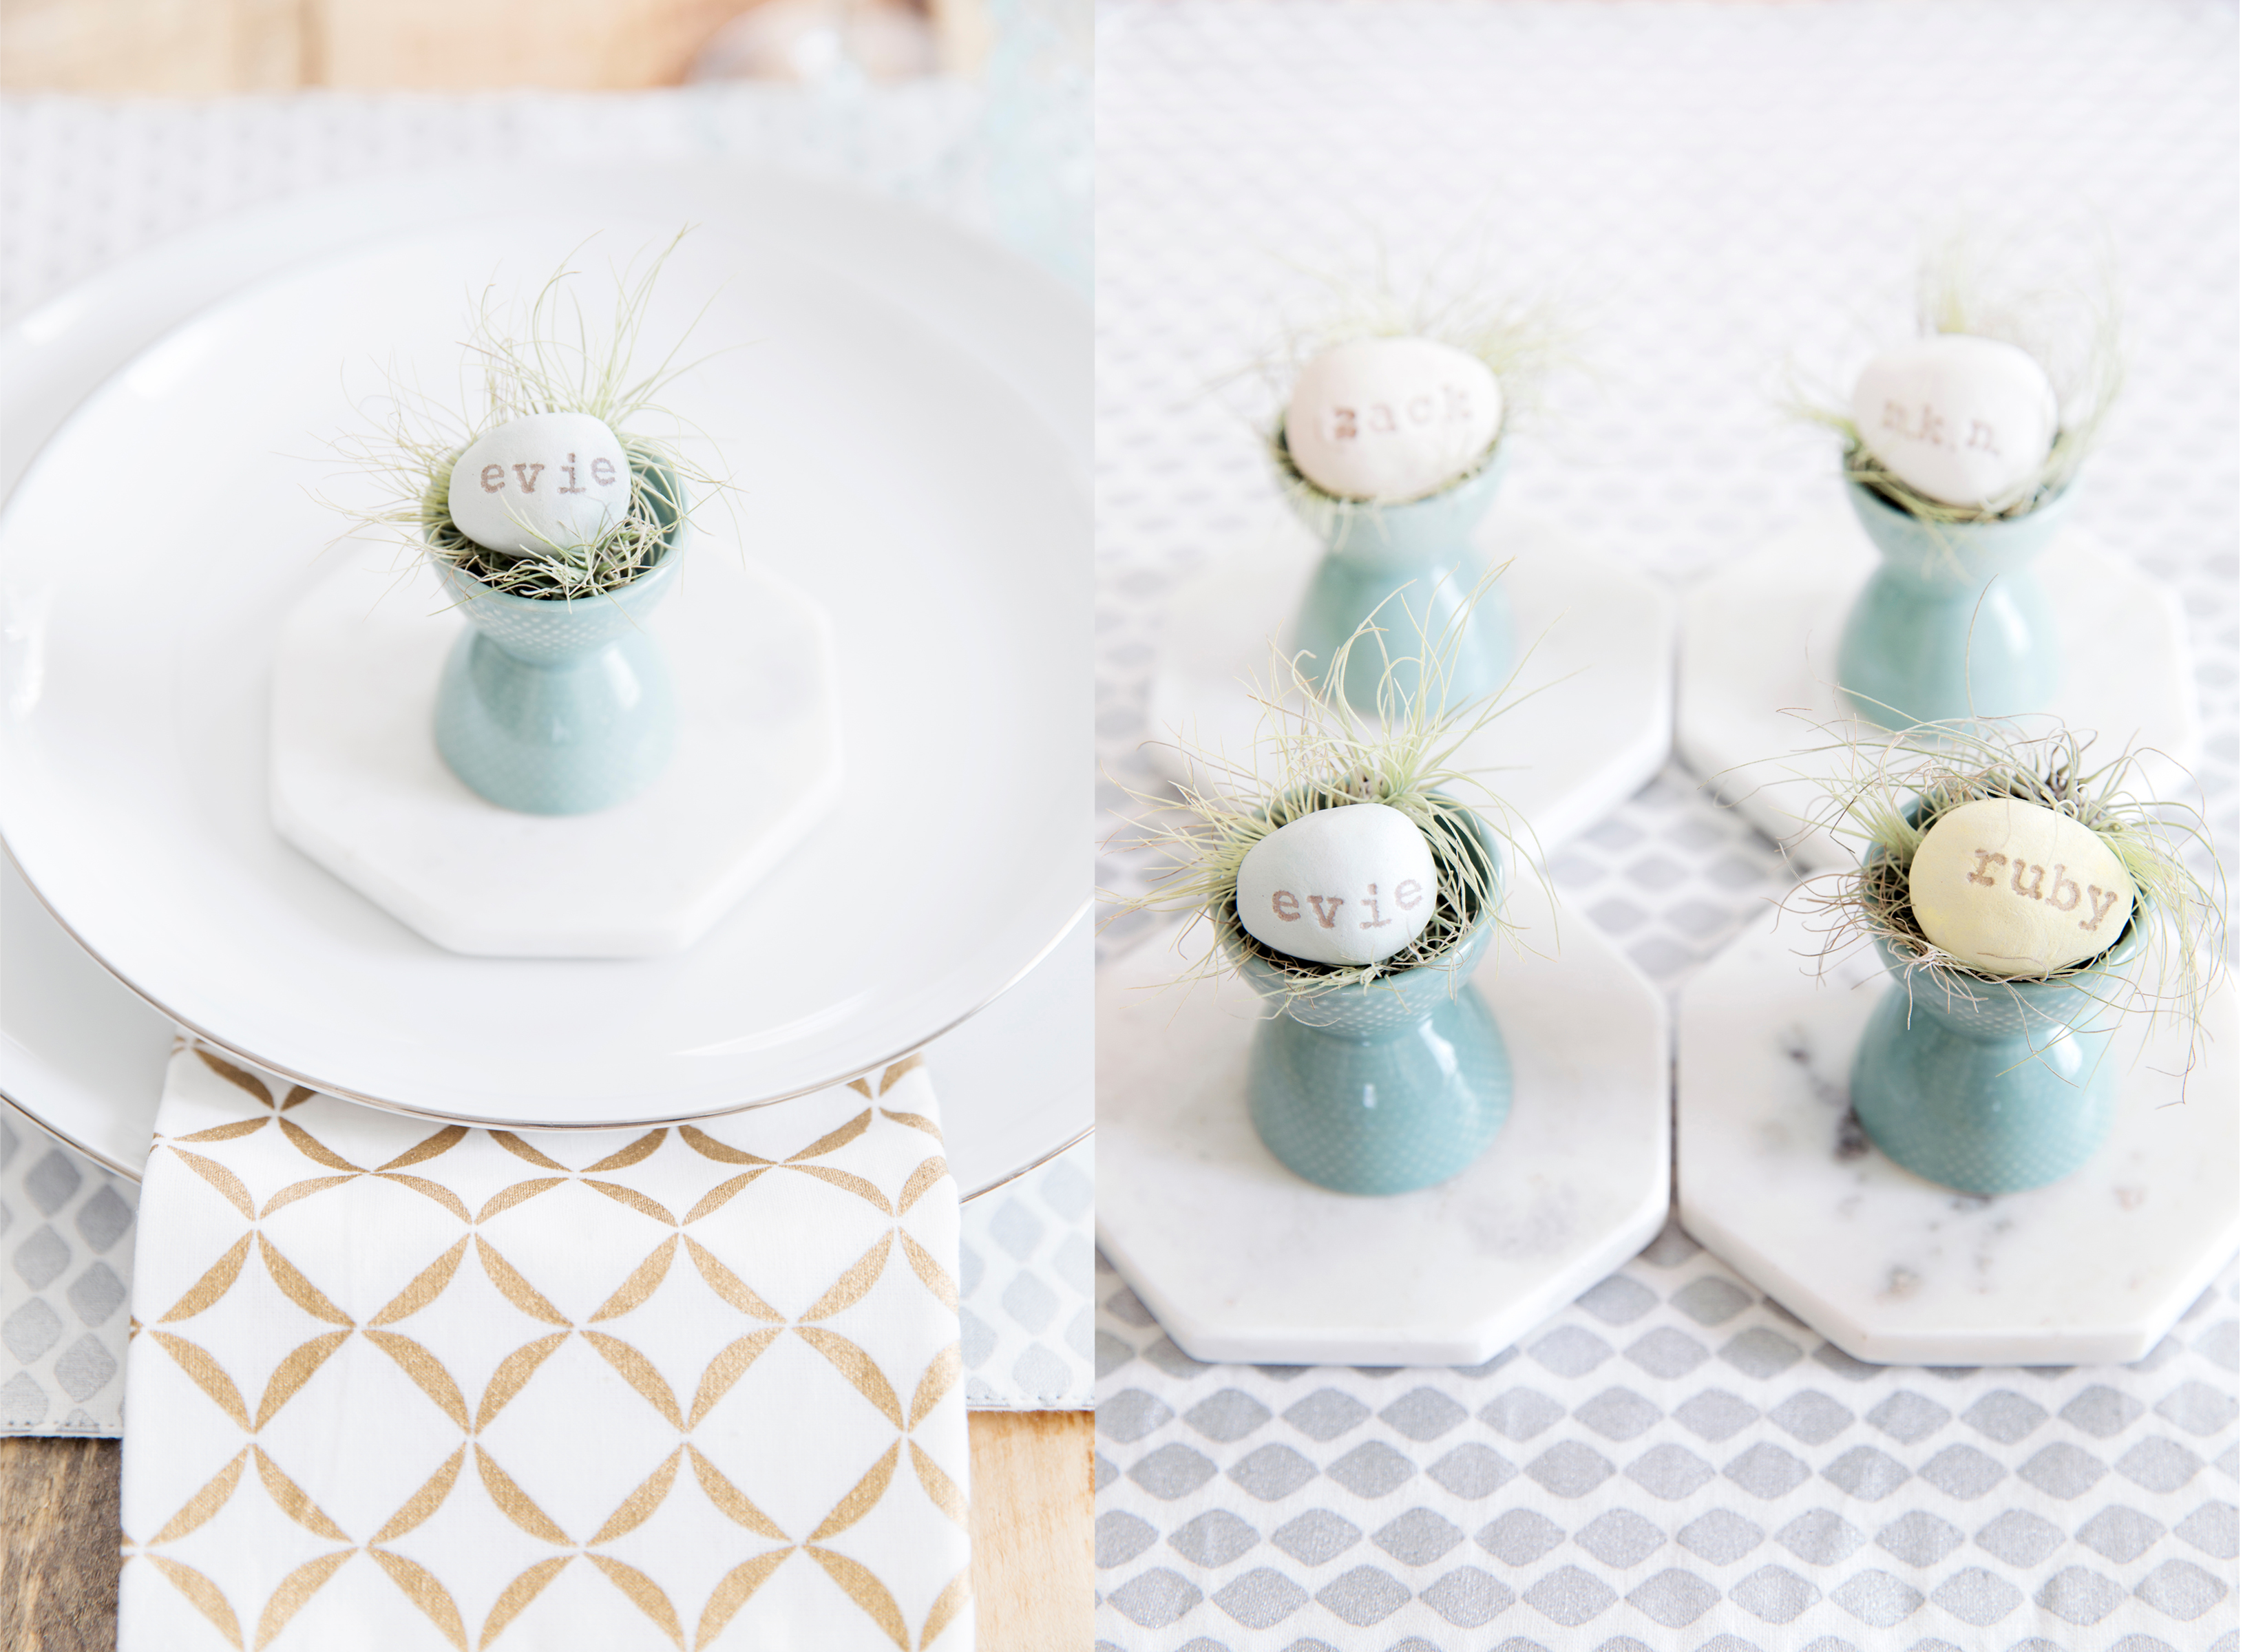 West elm craft night for West elm table setting